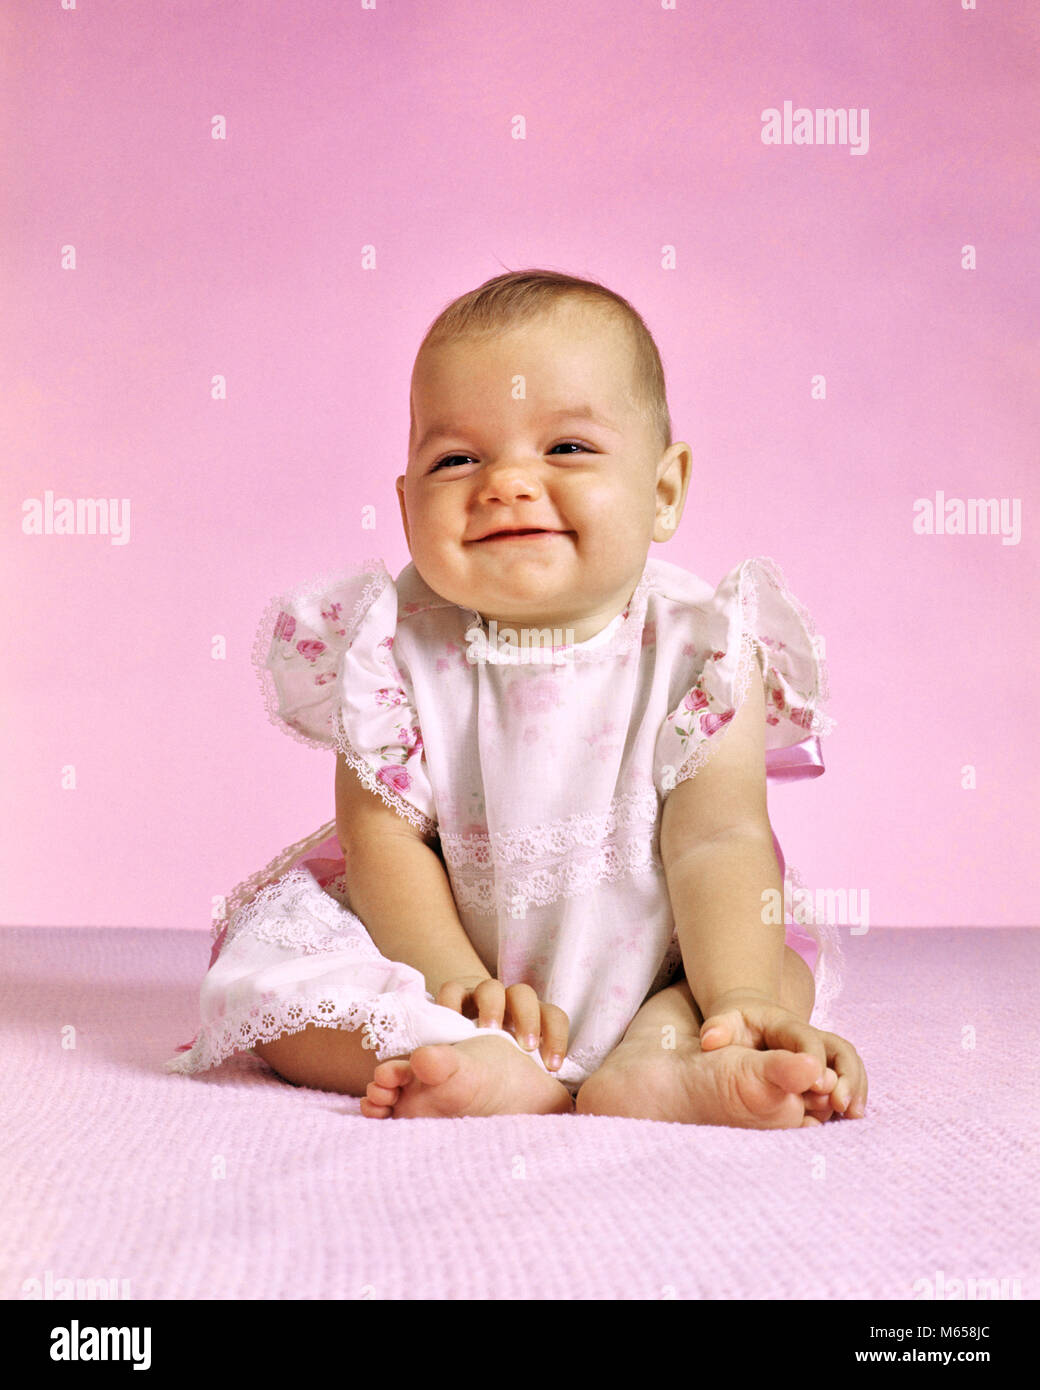 1970s BABY GIRL IN PINK SITTING SMILING - kb10543 HAR001 HARS JOYFUL 6-12 MONTHS JUVENILES BABY GIRL CAUCASIAN ETHNICITY - Stock Image